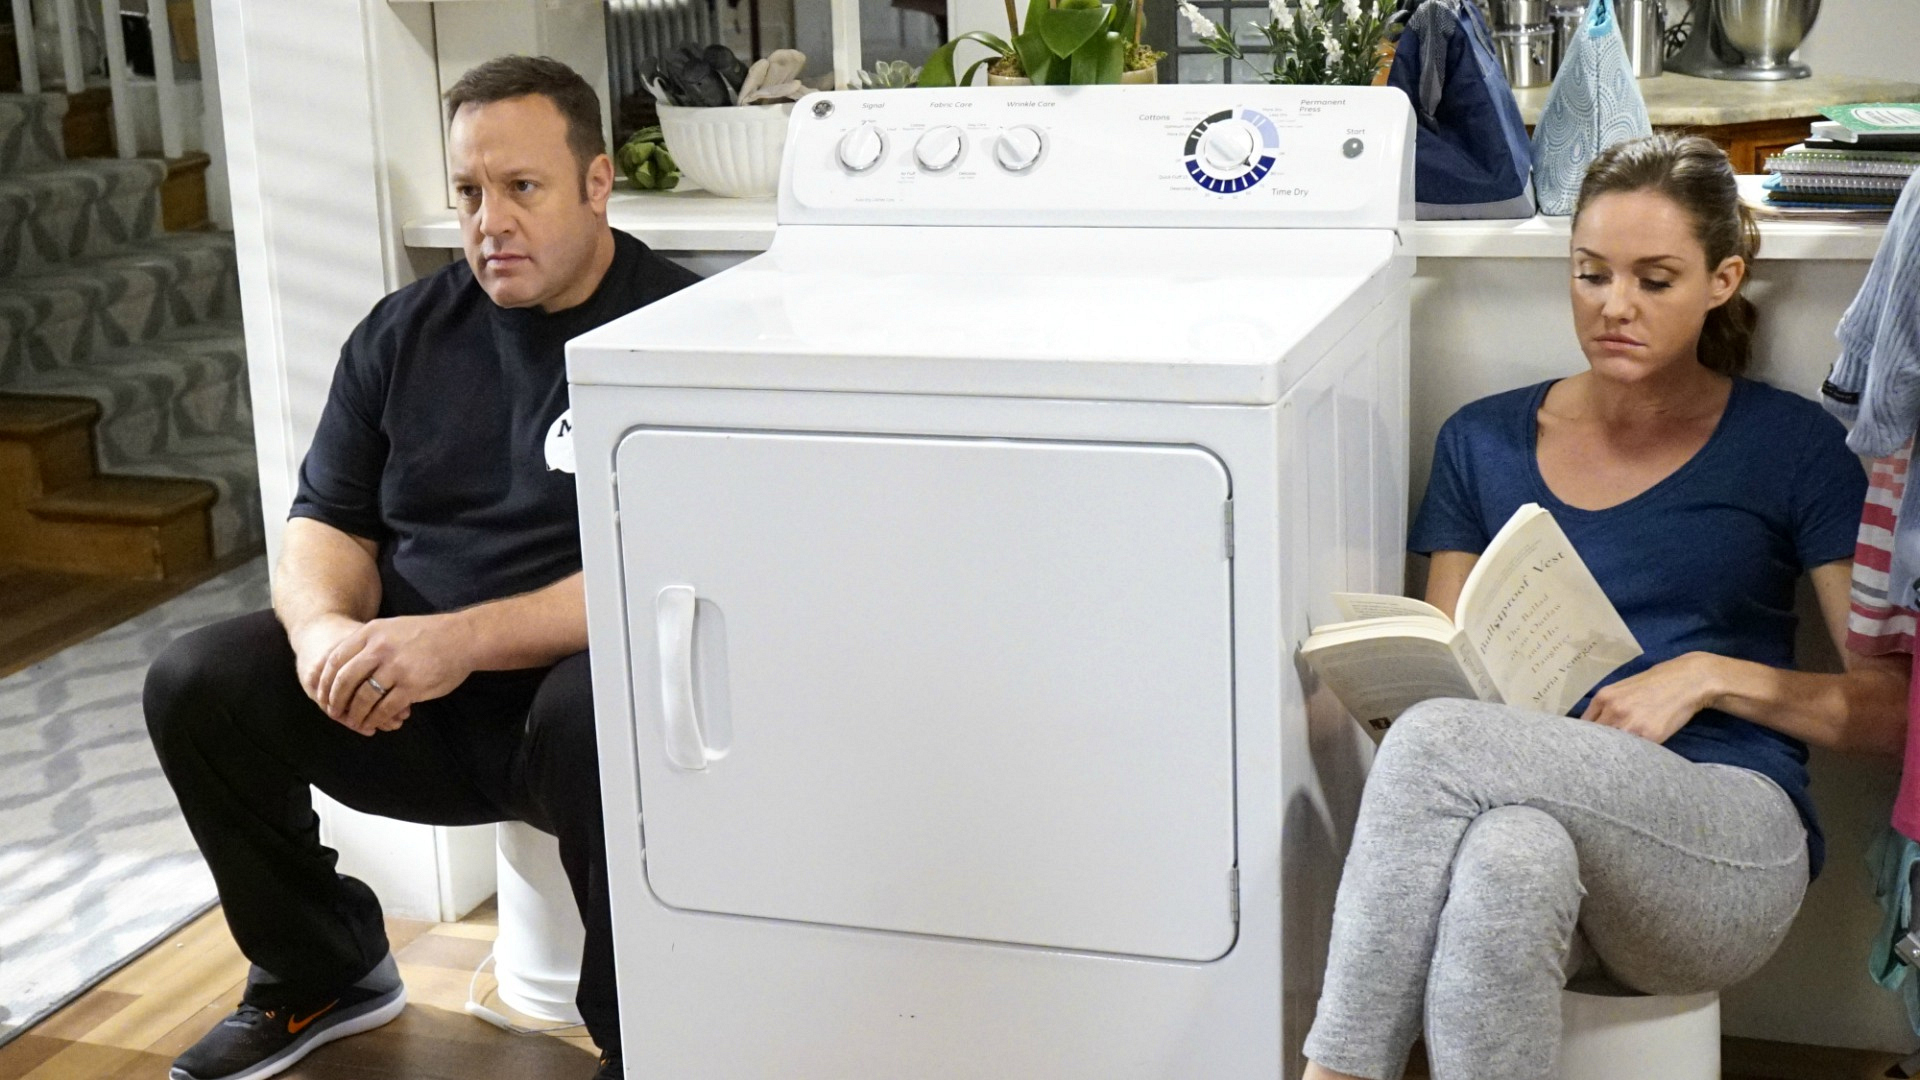 Kevin joins Donna by the dryer for some quiet time.